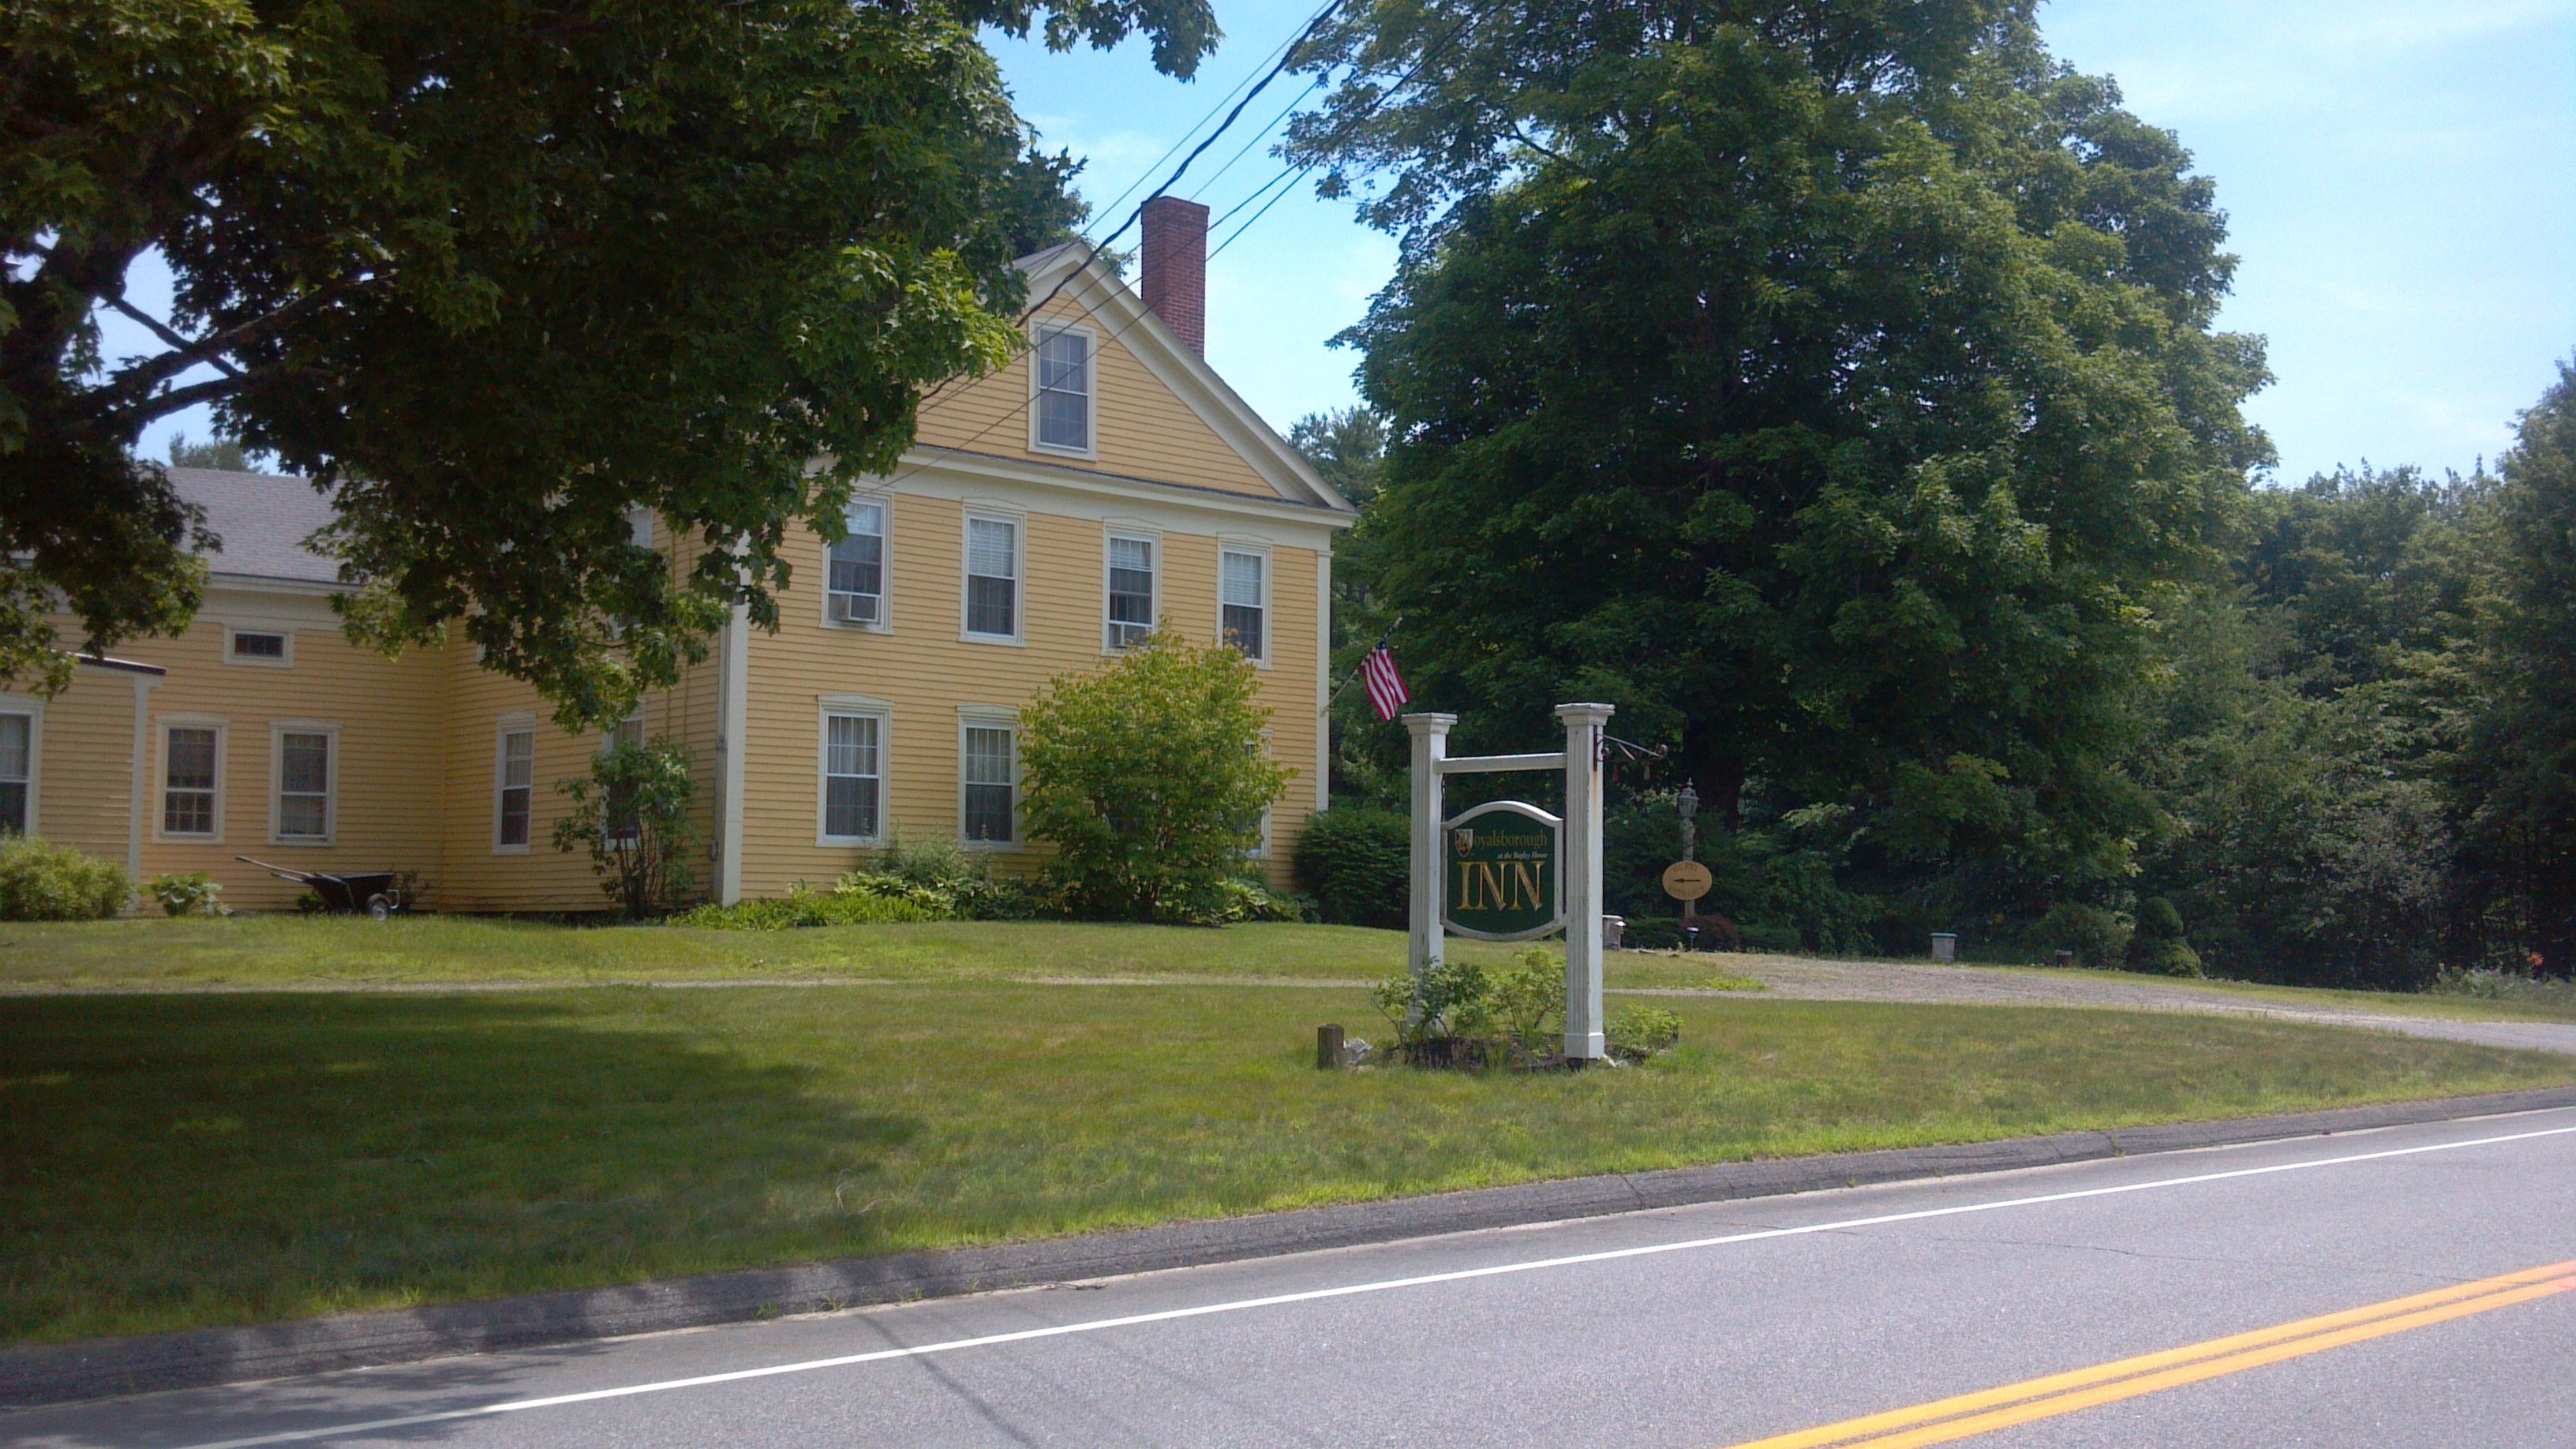 Royalsborough Inn at Bagley House